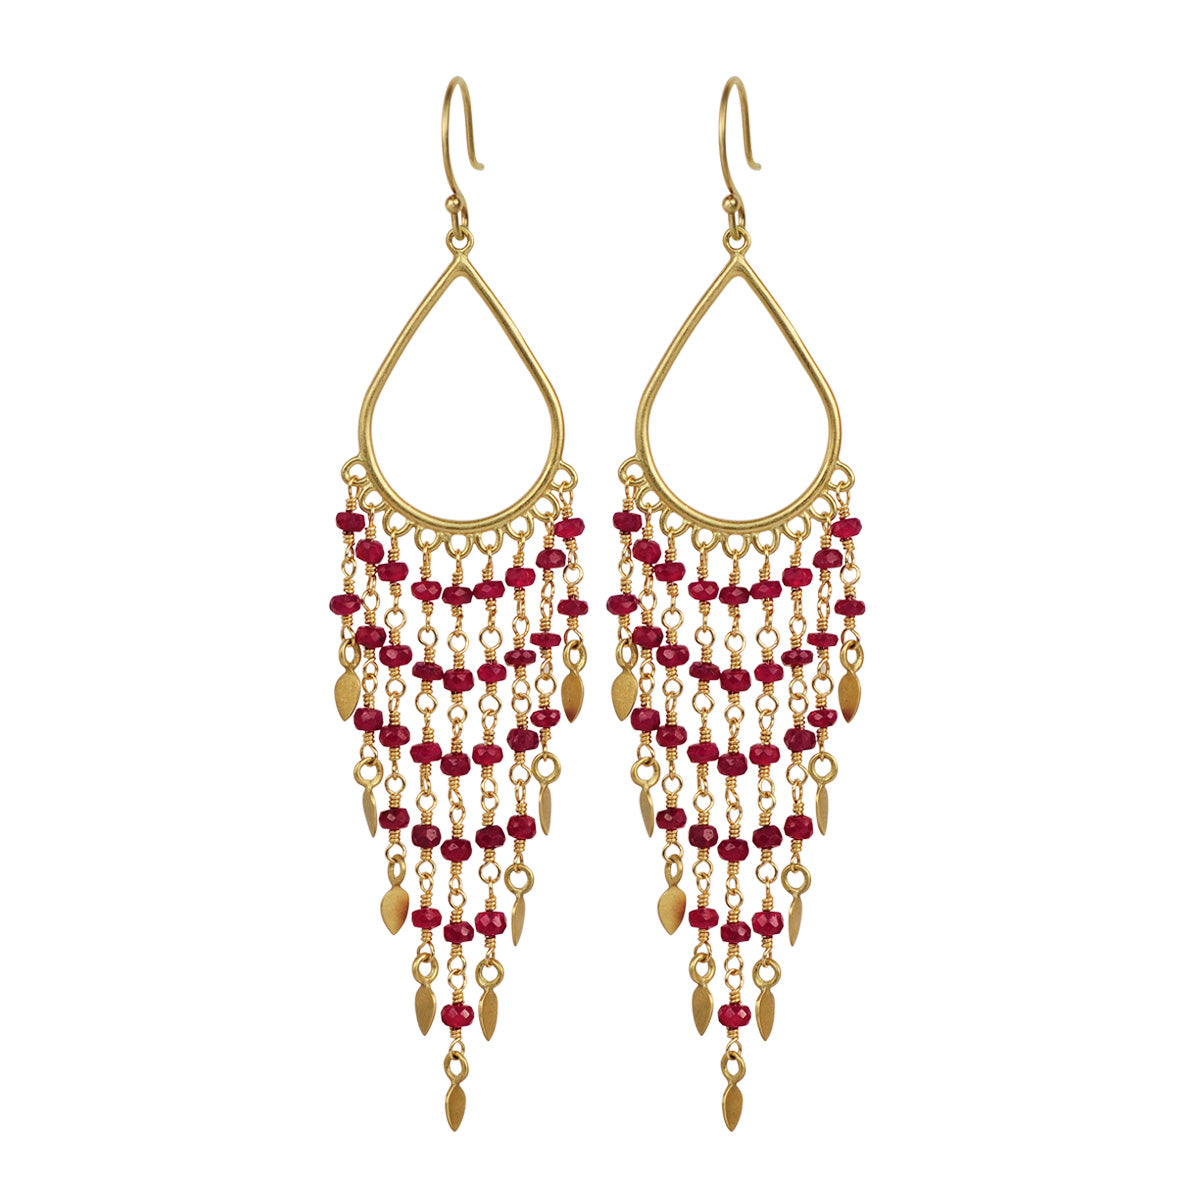 18k Gold Teardrop Ruby Fringe Earrings